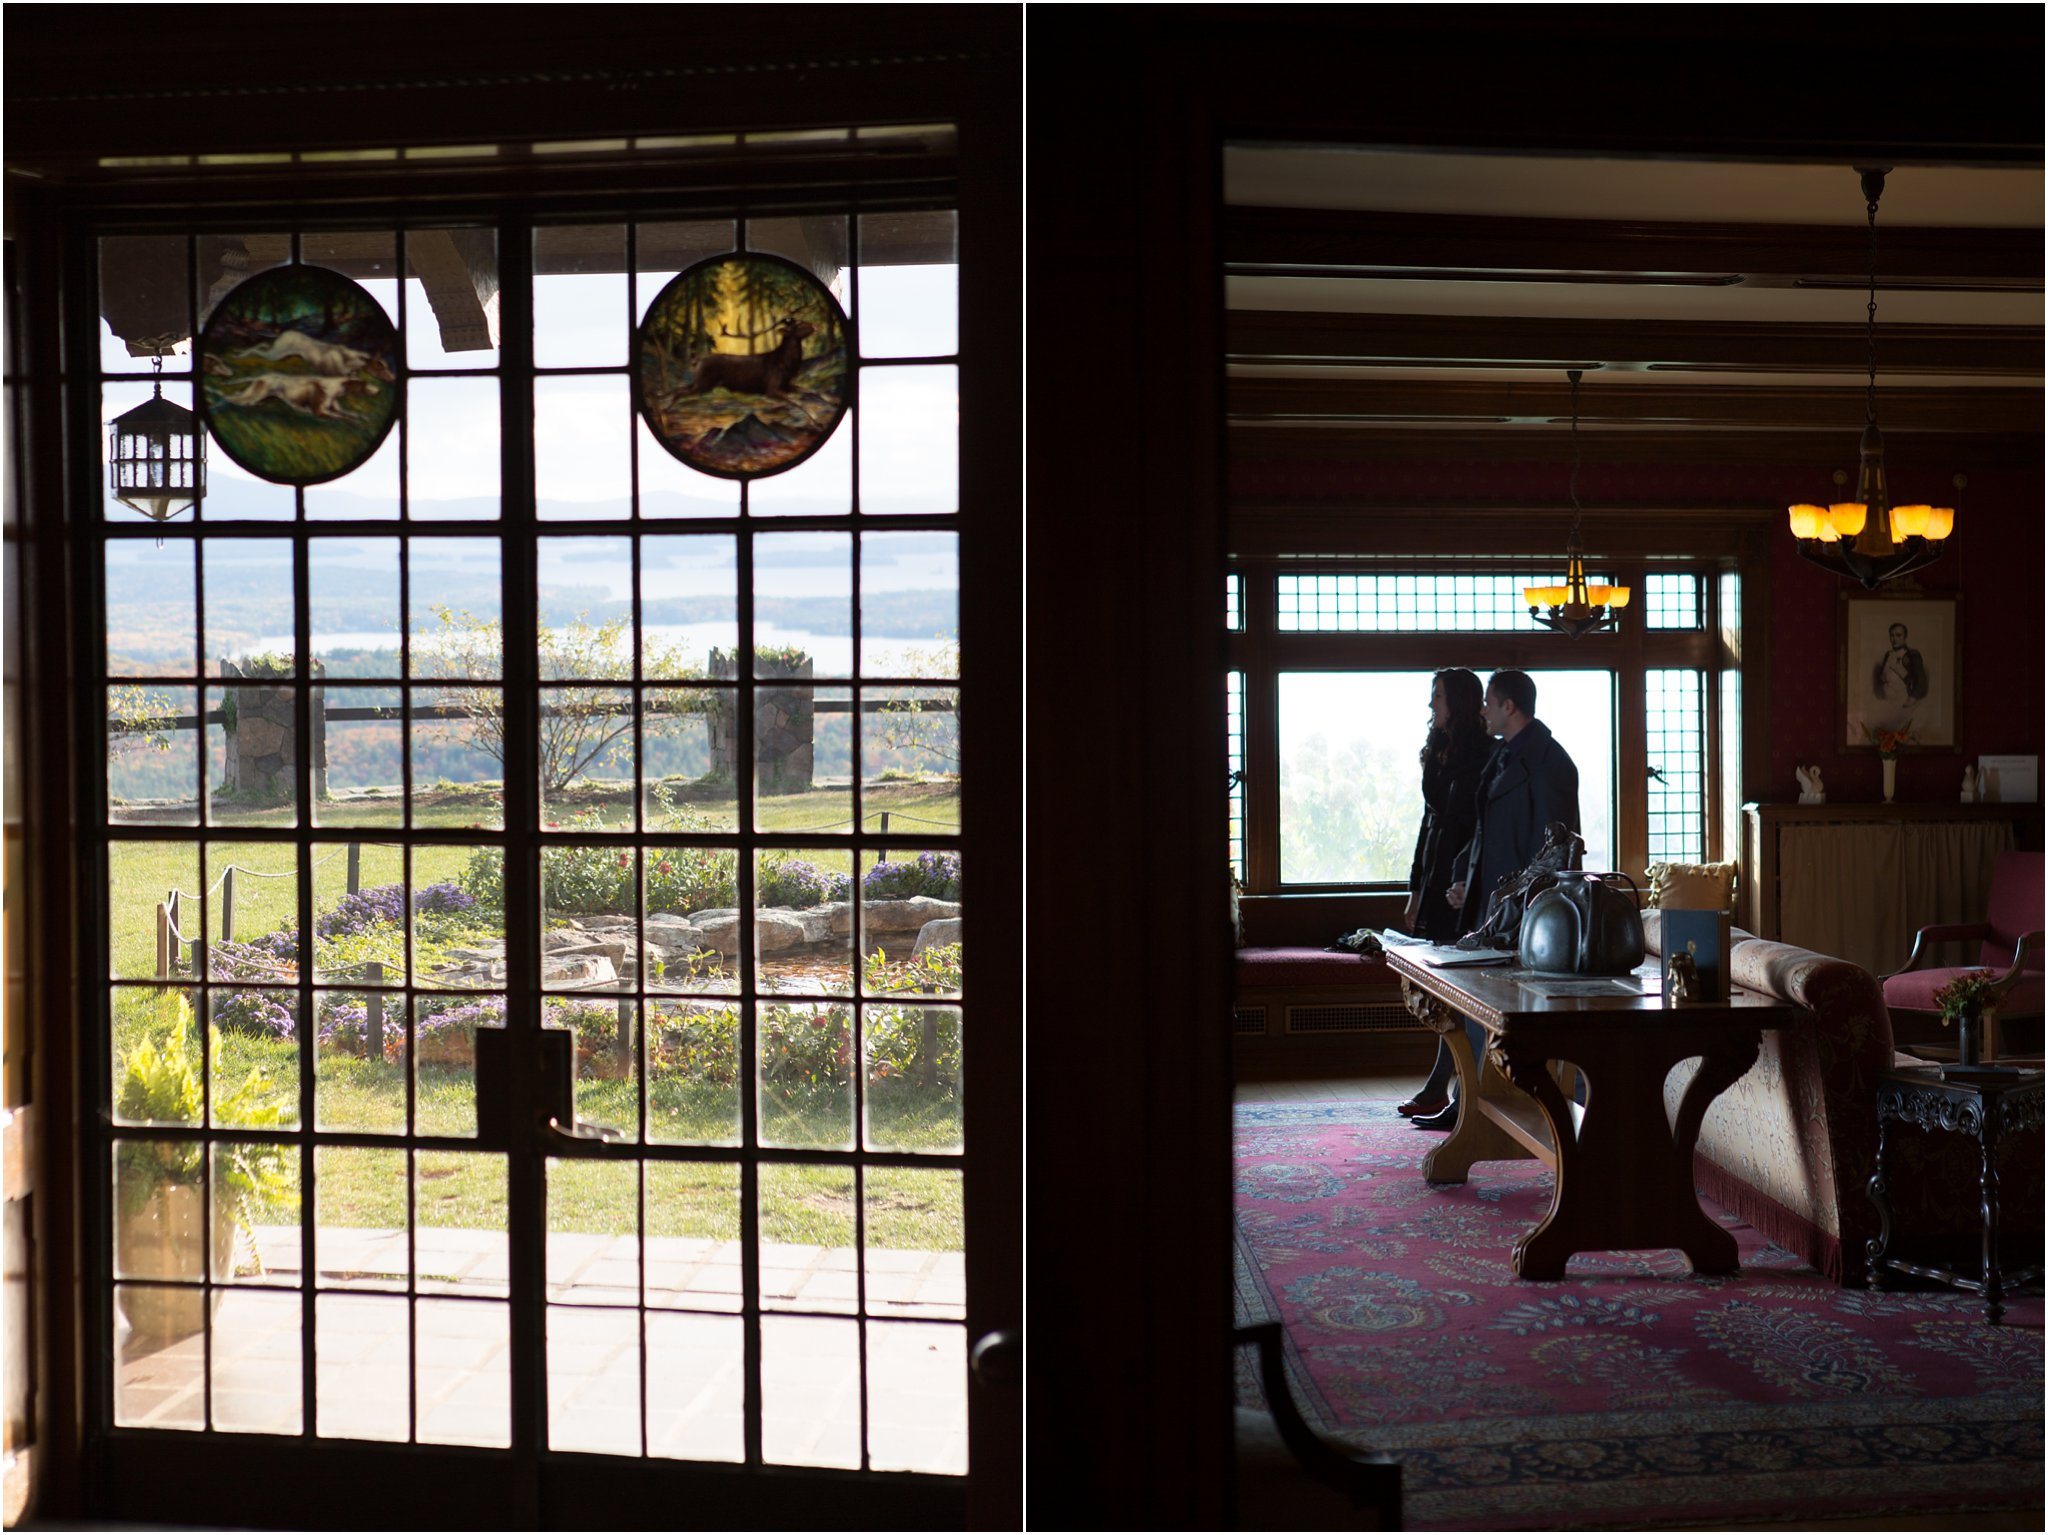 Garden doors and interior at Castle in the Clouds